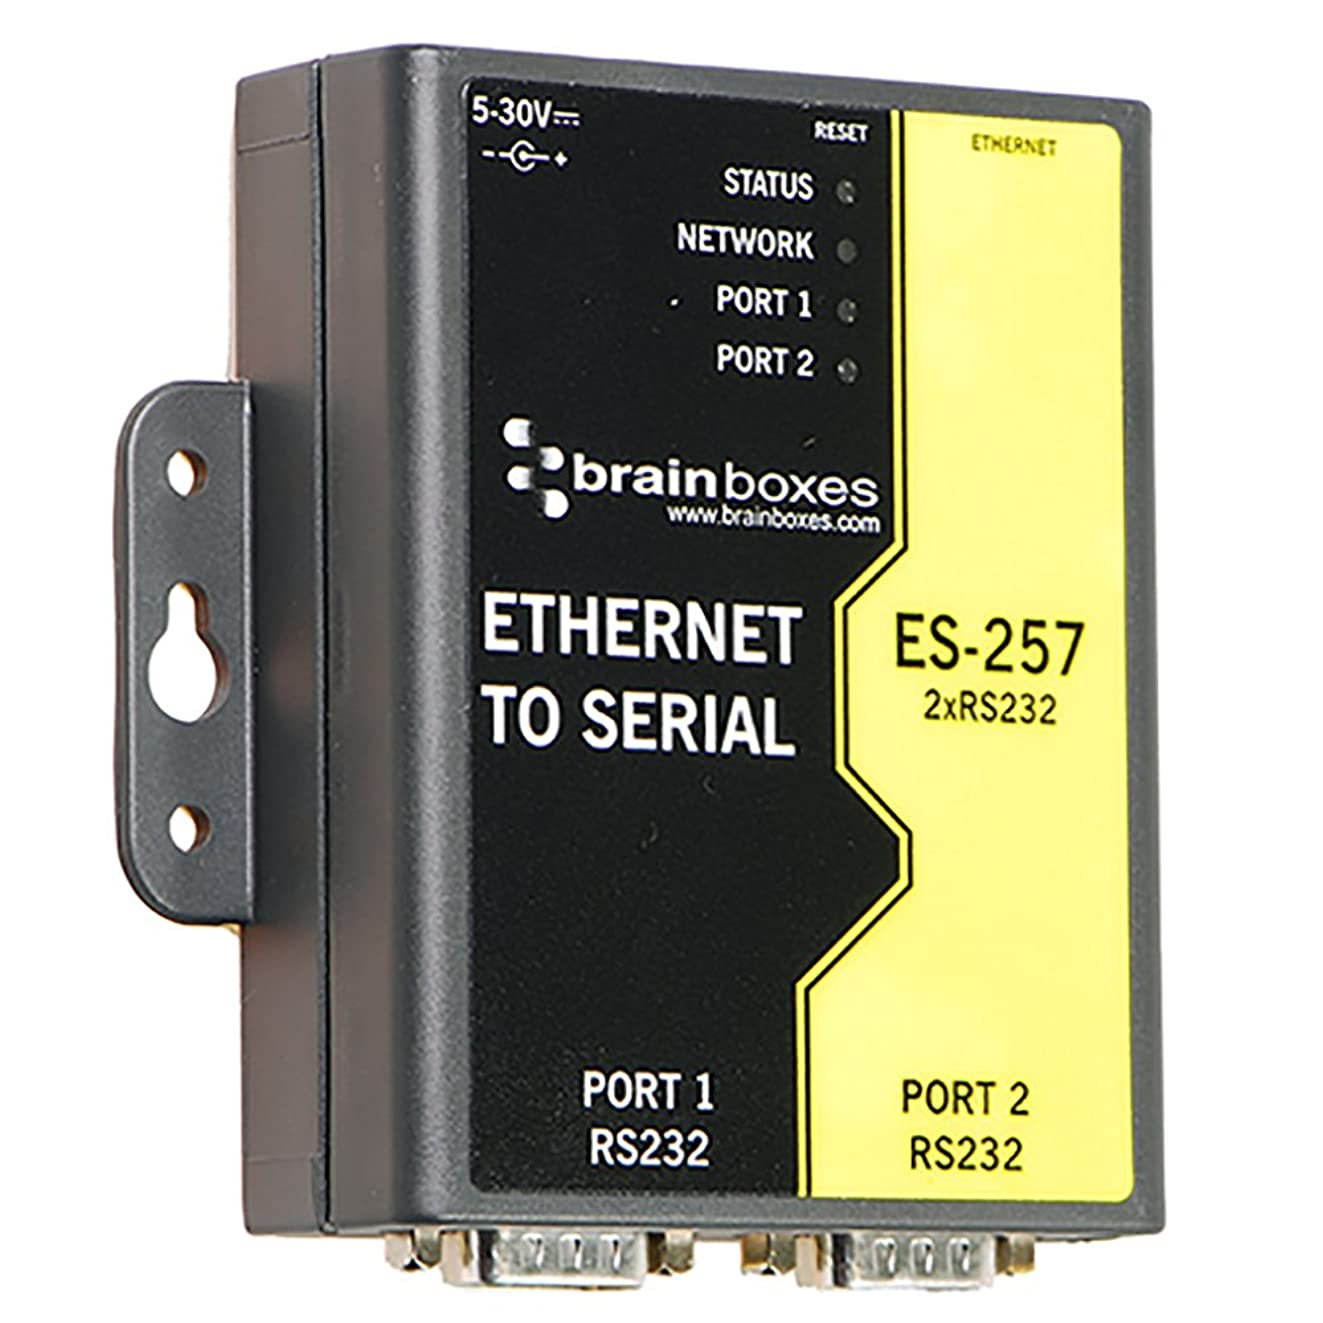 Brainboxes - Device Server - 2 Ports - 10MB LAN, 100MB LAN, RS-232 (ES-257)